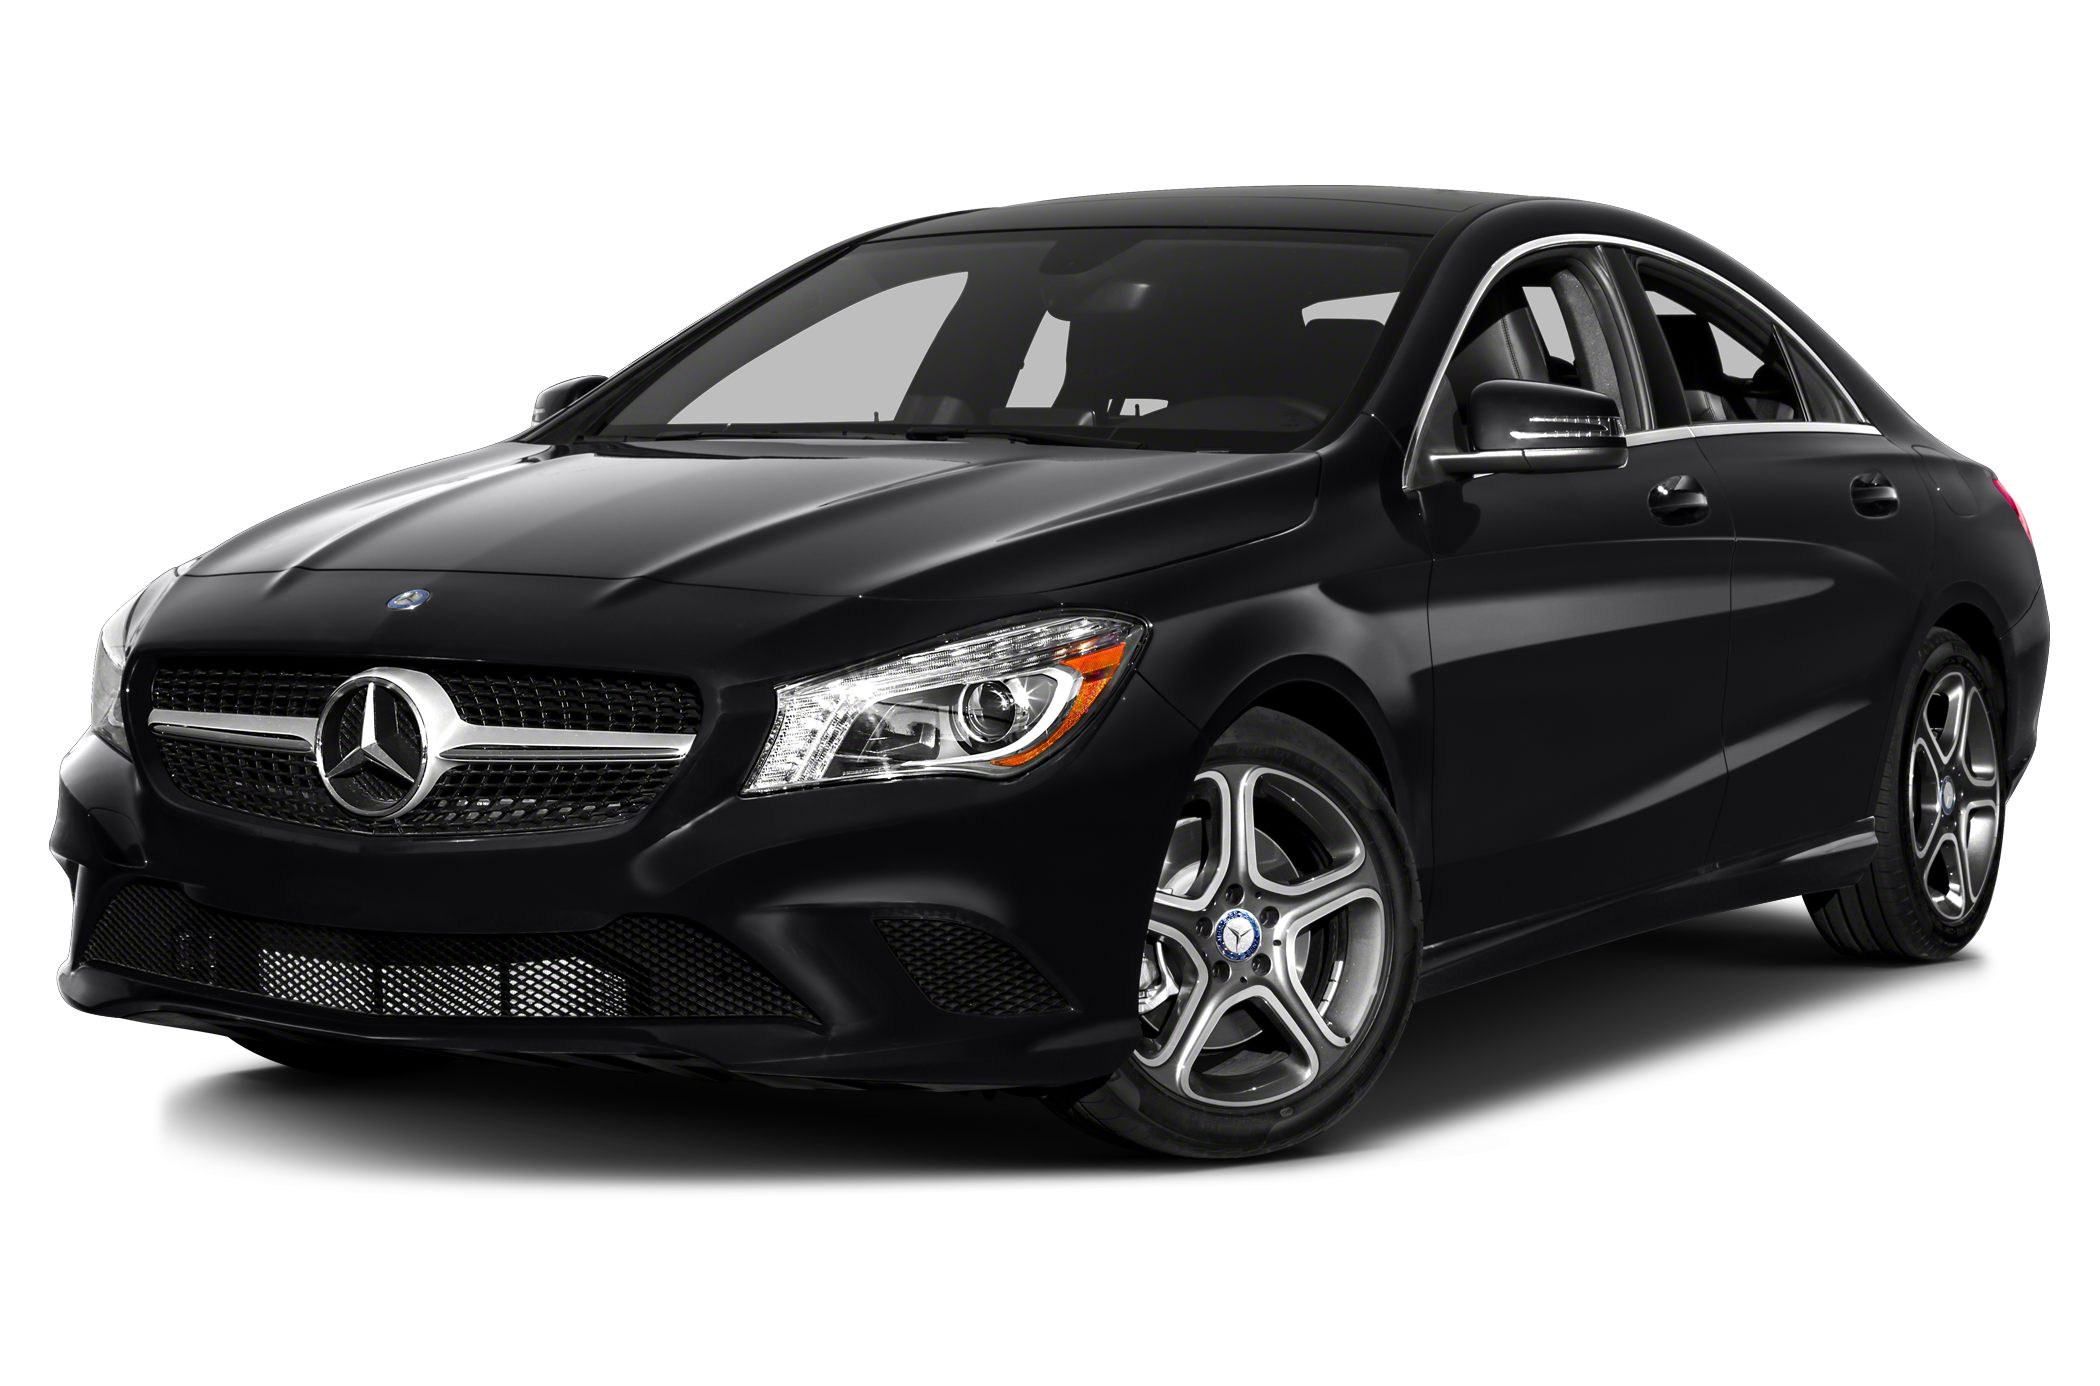 2014 Mercedes-Benz CLA-Class CLA250 Sedan for sale in Silver Spring for $35,930 with 438 miles.